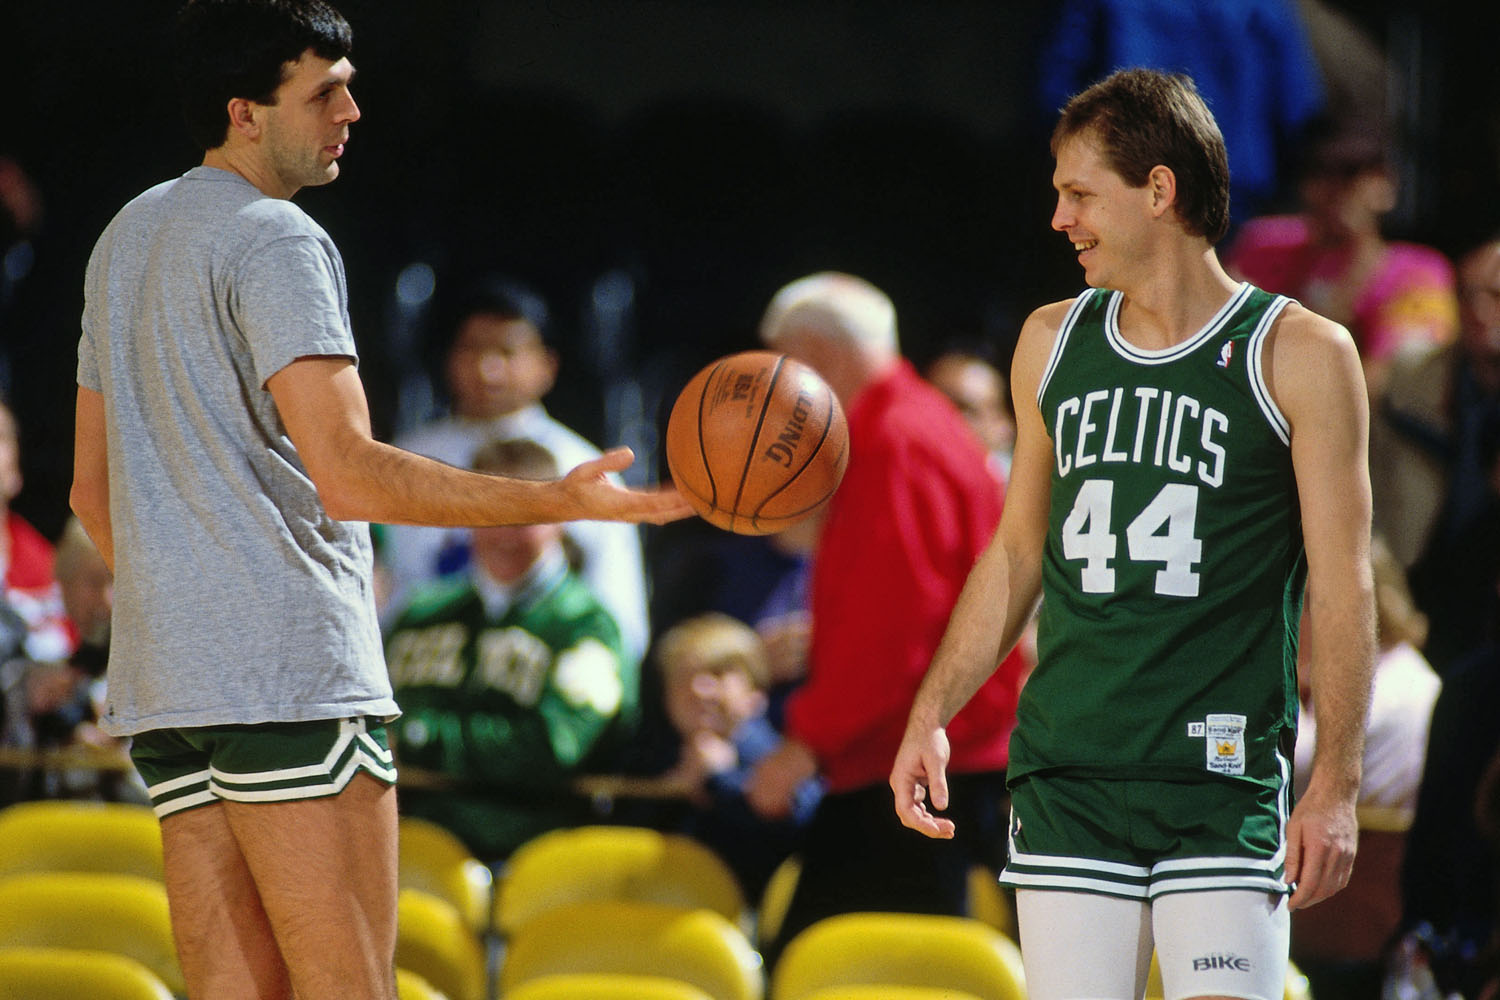 Kevin McHale and Danny Ainge warm up prior to a game against the Los Angeles Lakers circa 1987 at the Great Western Forum in Inglewood, California.